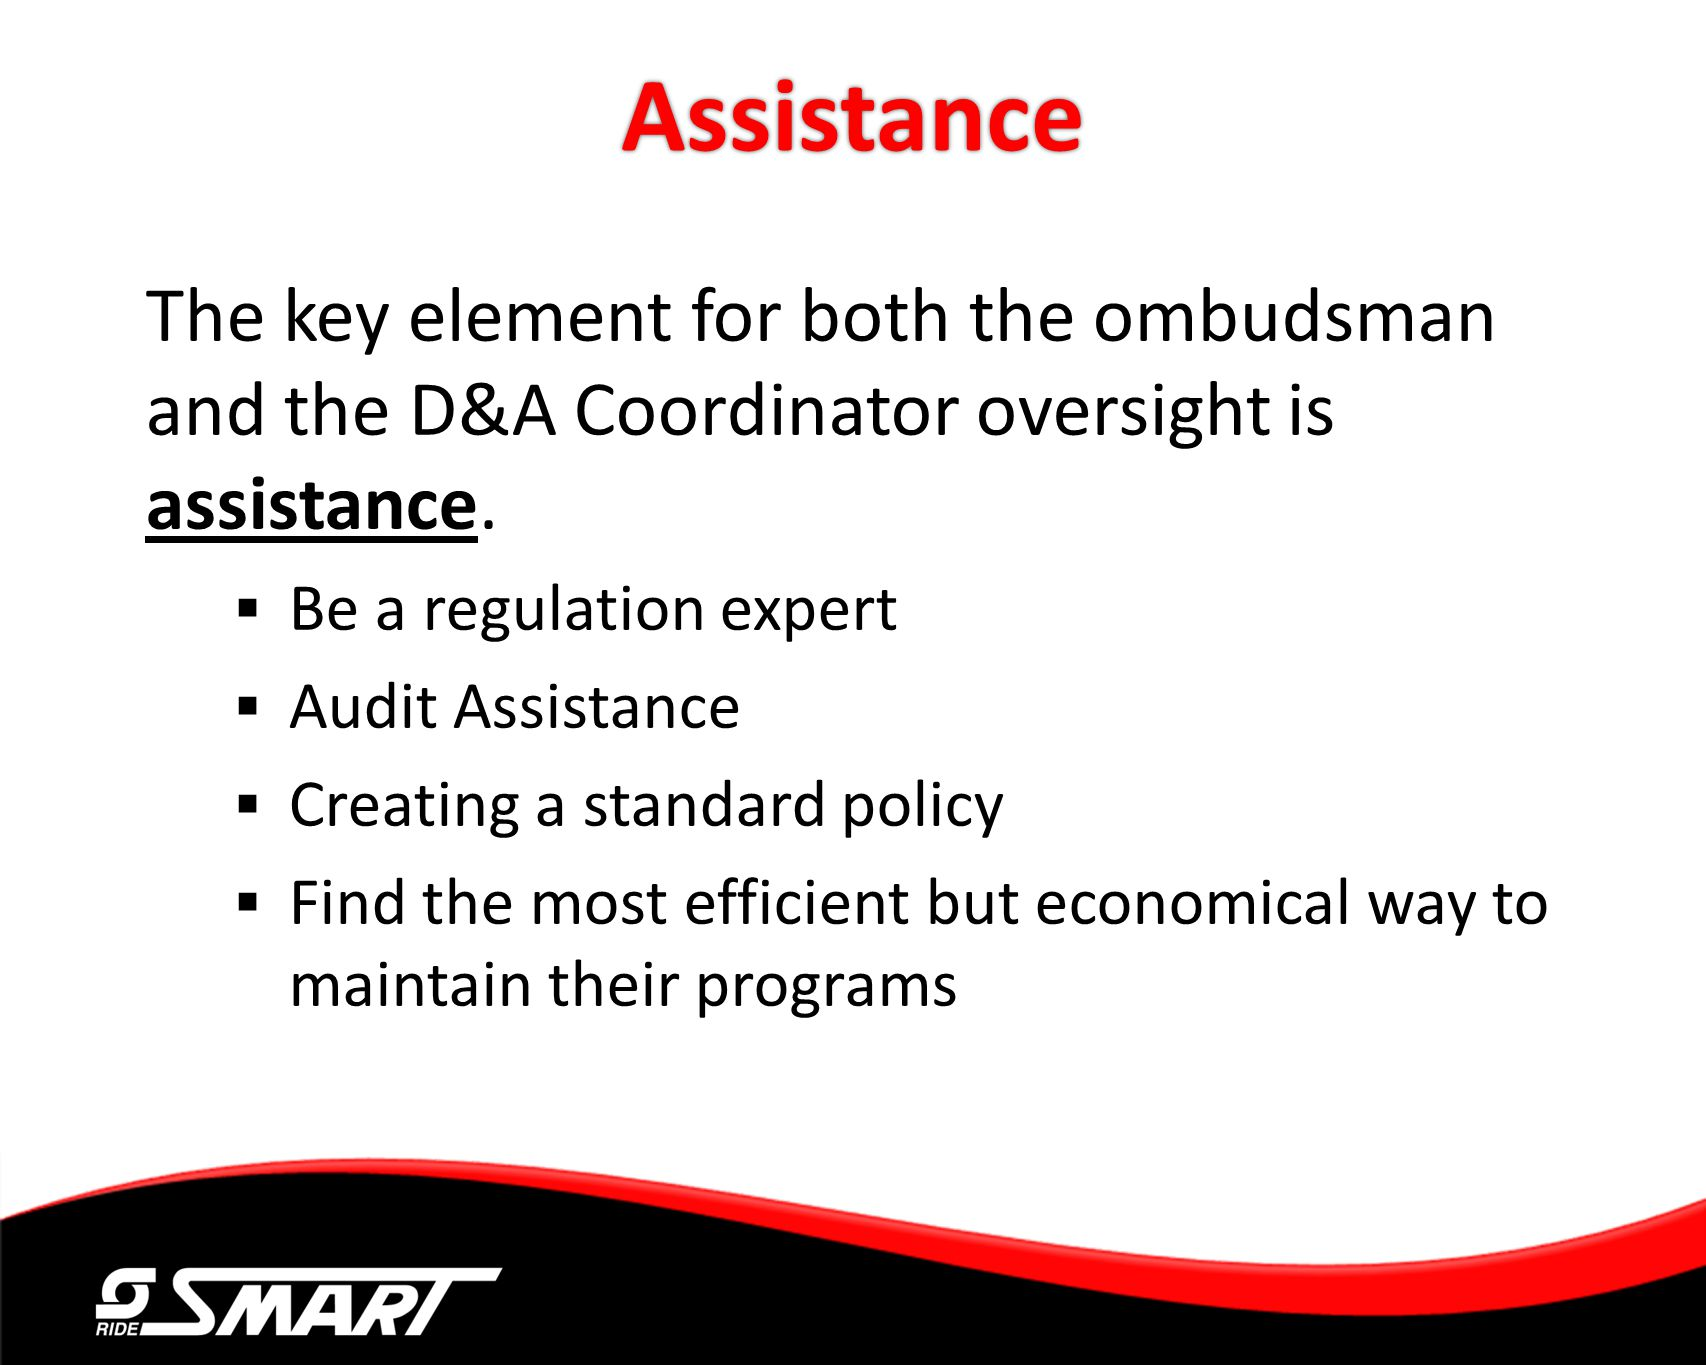 Assistance The key element for both the ombudsman and the D&A Coordinator oversight is assistance. Be a regulation expert Audit Assistance Creating a